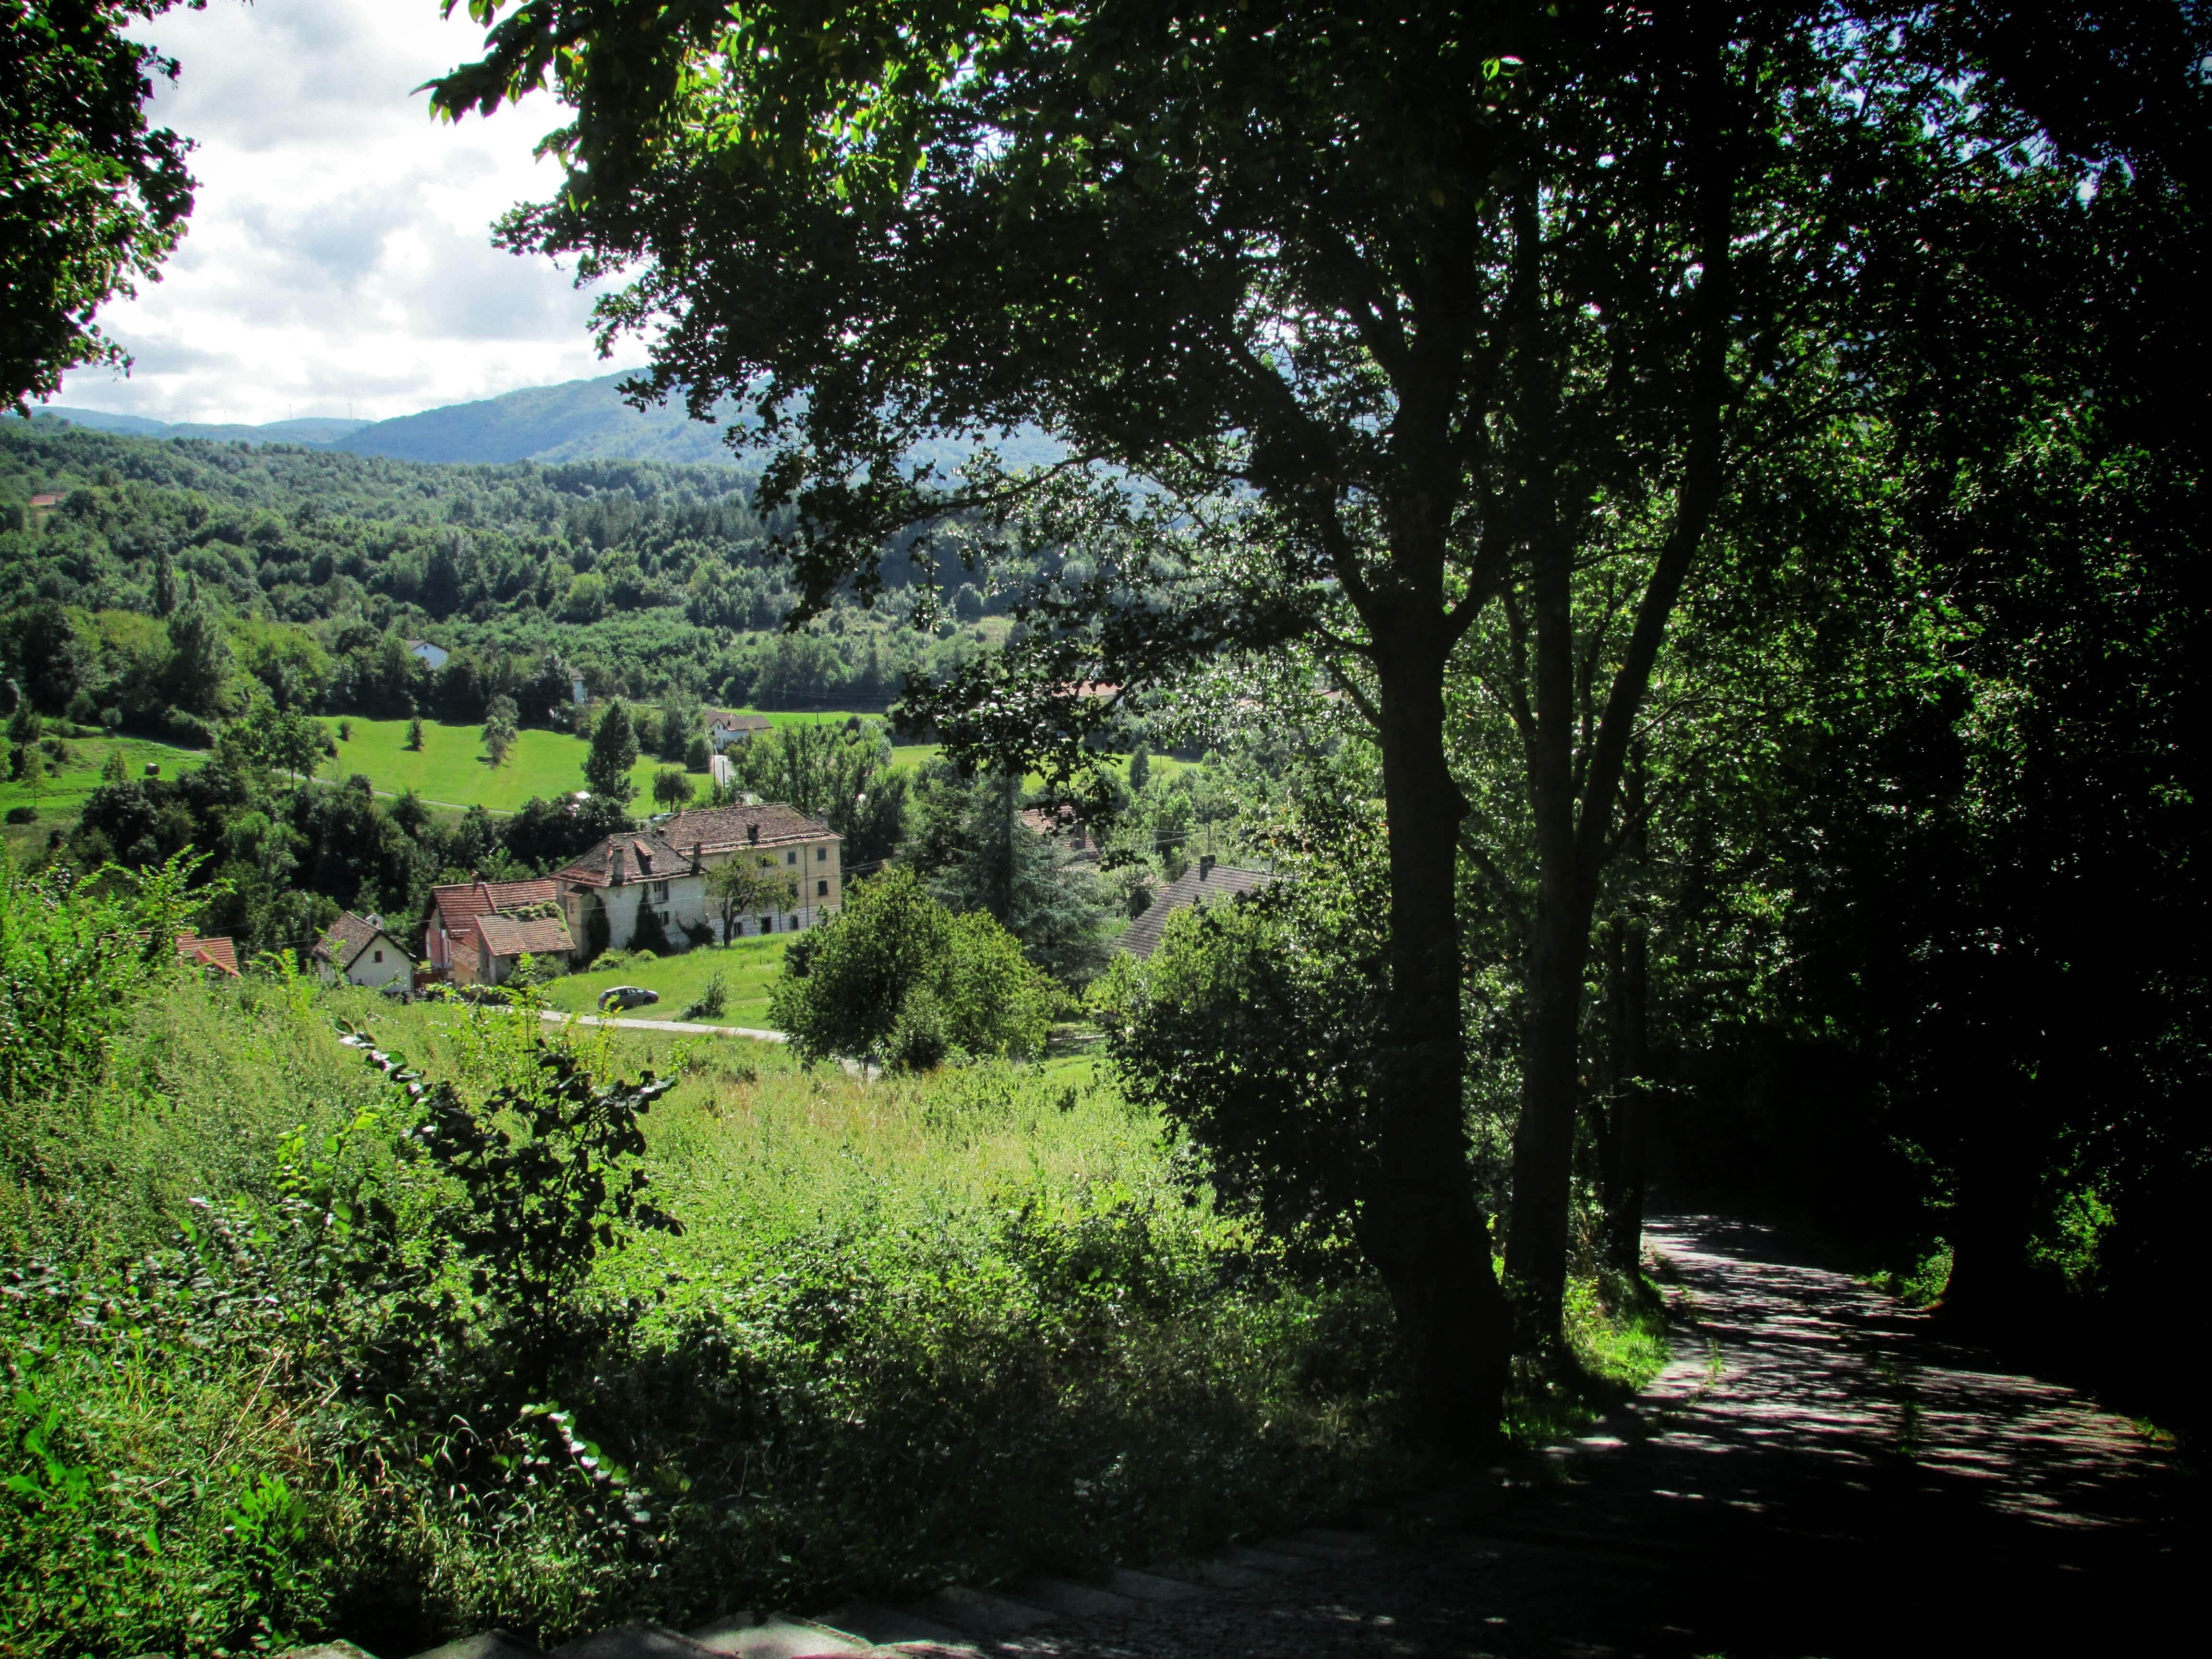 Italian village bombarded with interest after proposal that would pay people to move there